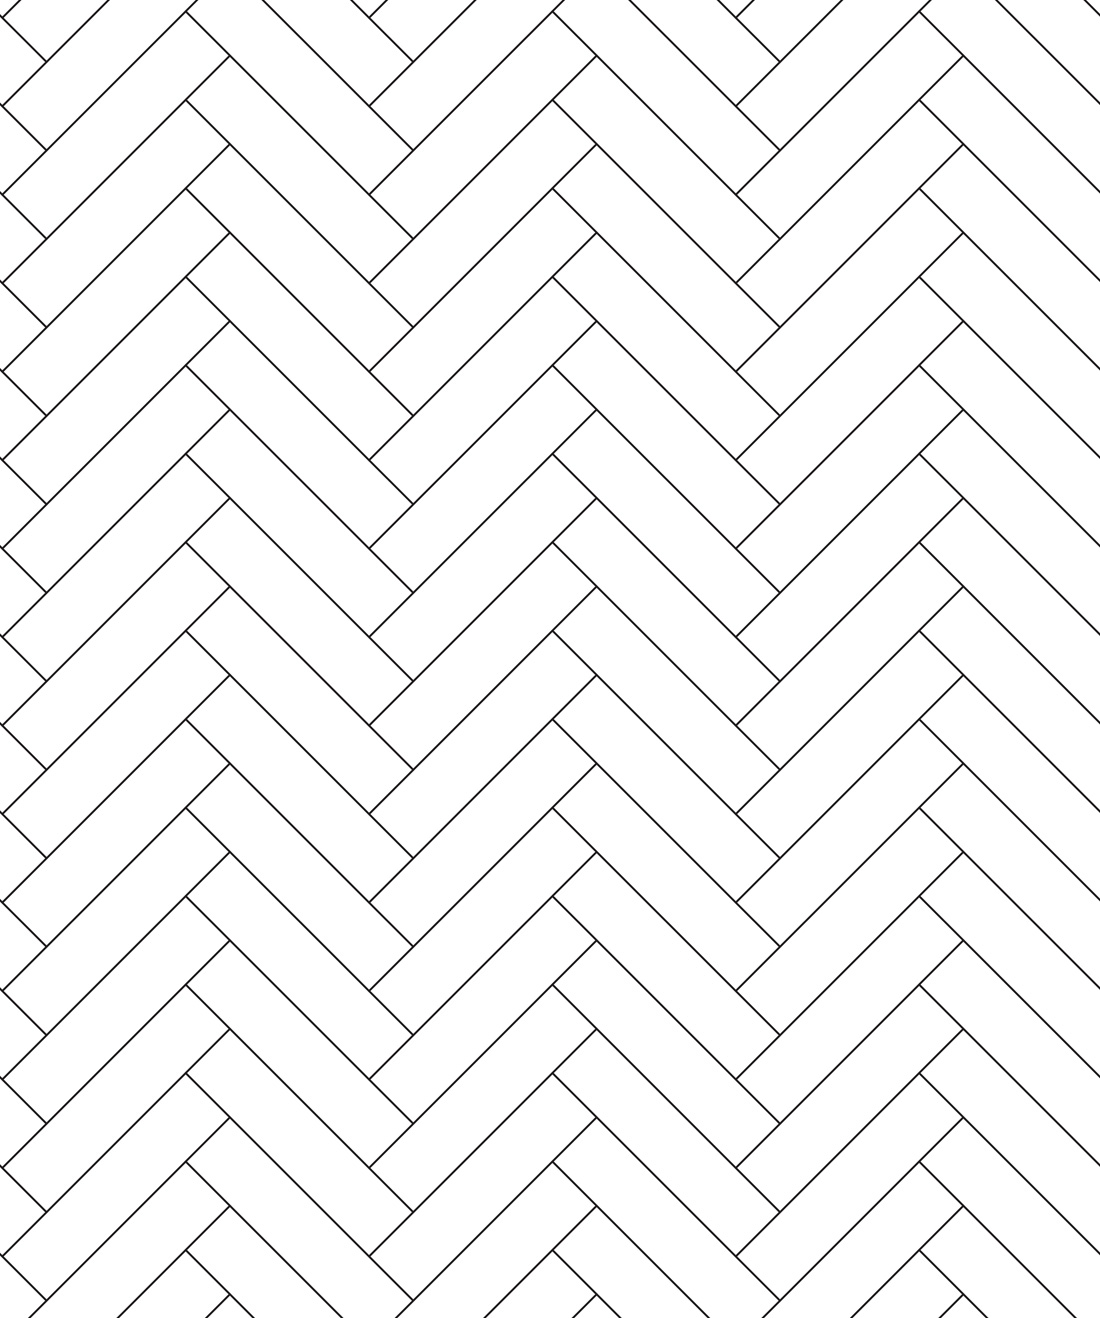 Contact Grid 55 Wallpaper Simple Grid Pattern Milton King,Cheapest And Safest Places To Live In The World